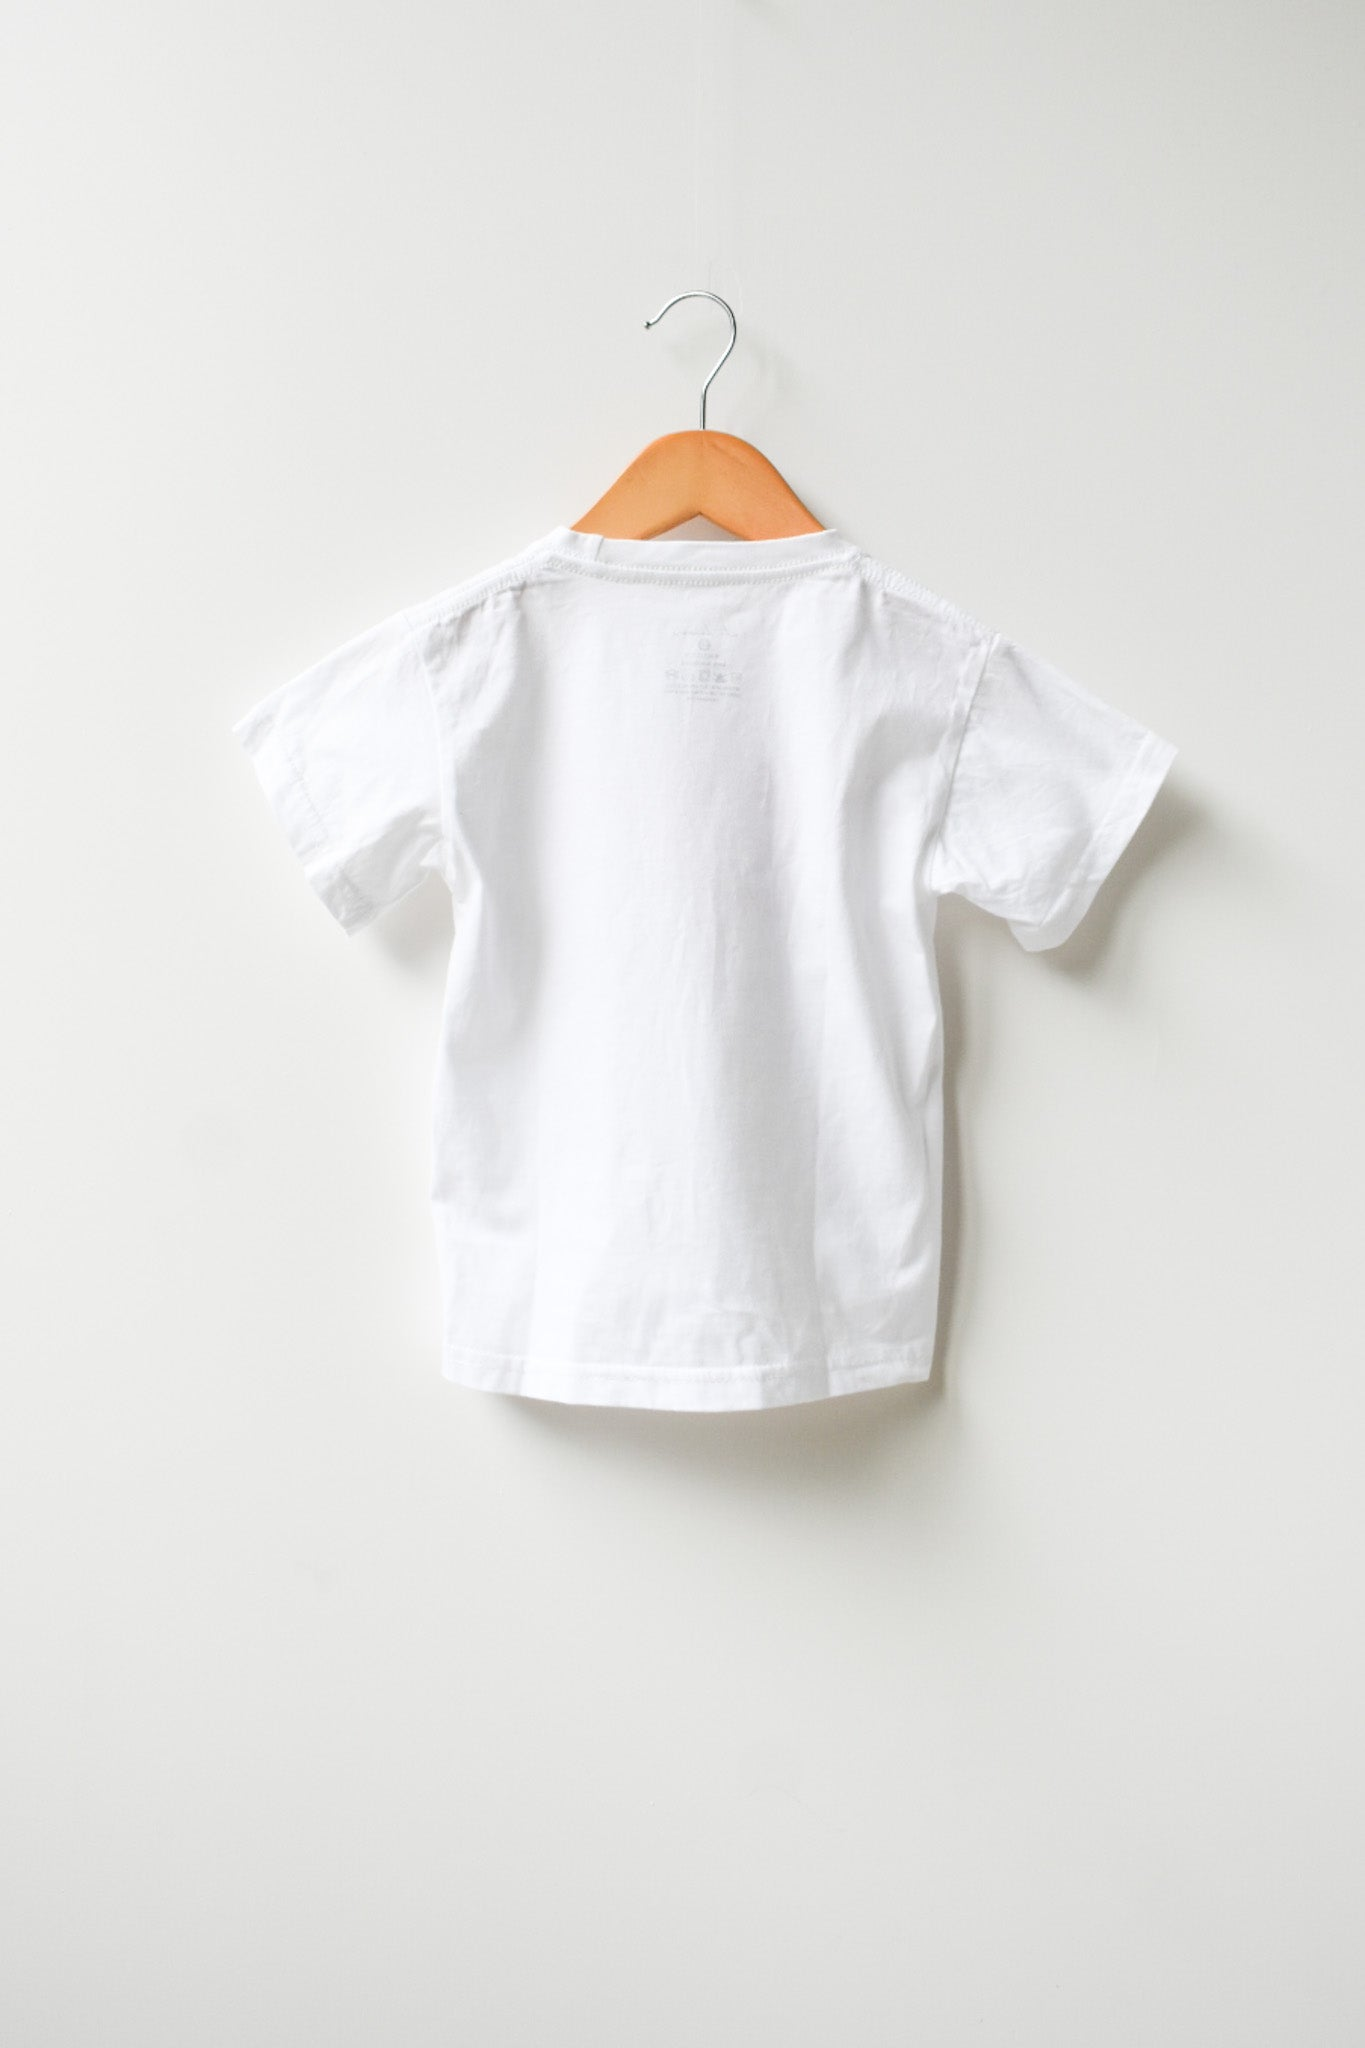 Kid's HI is a Good Idea Tee